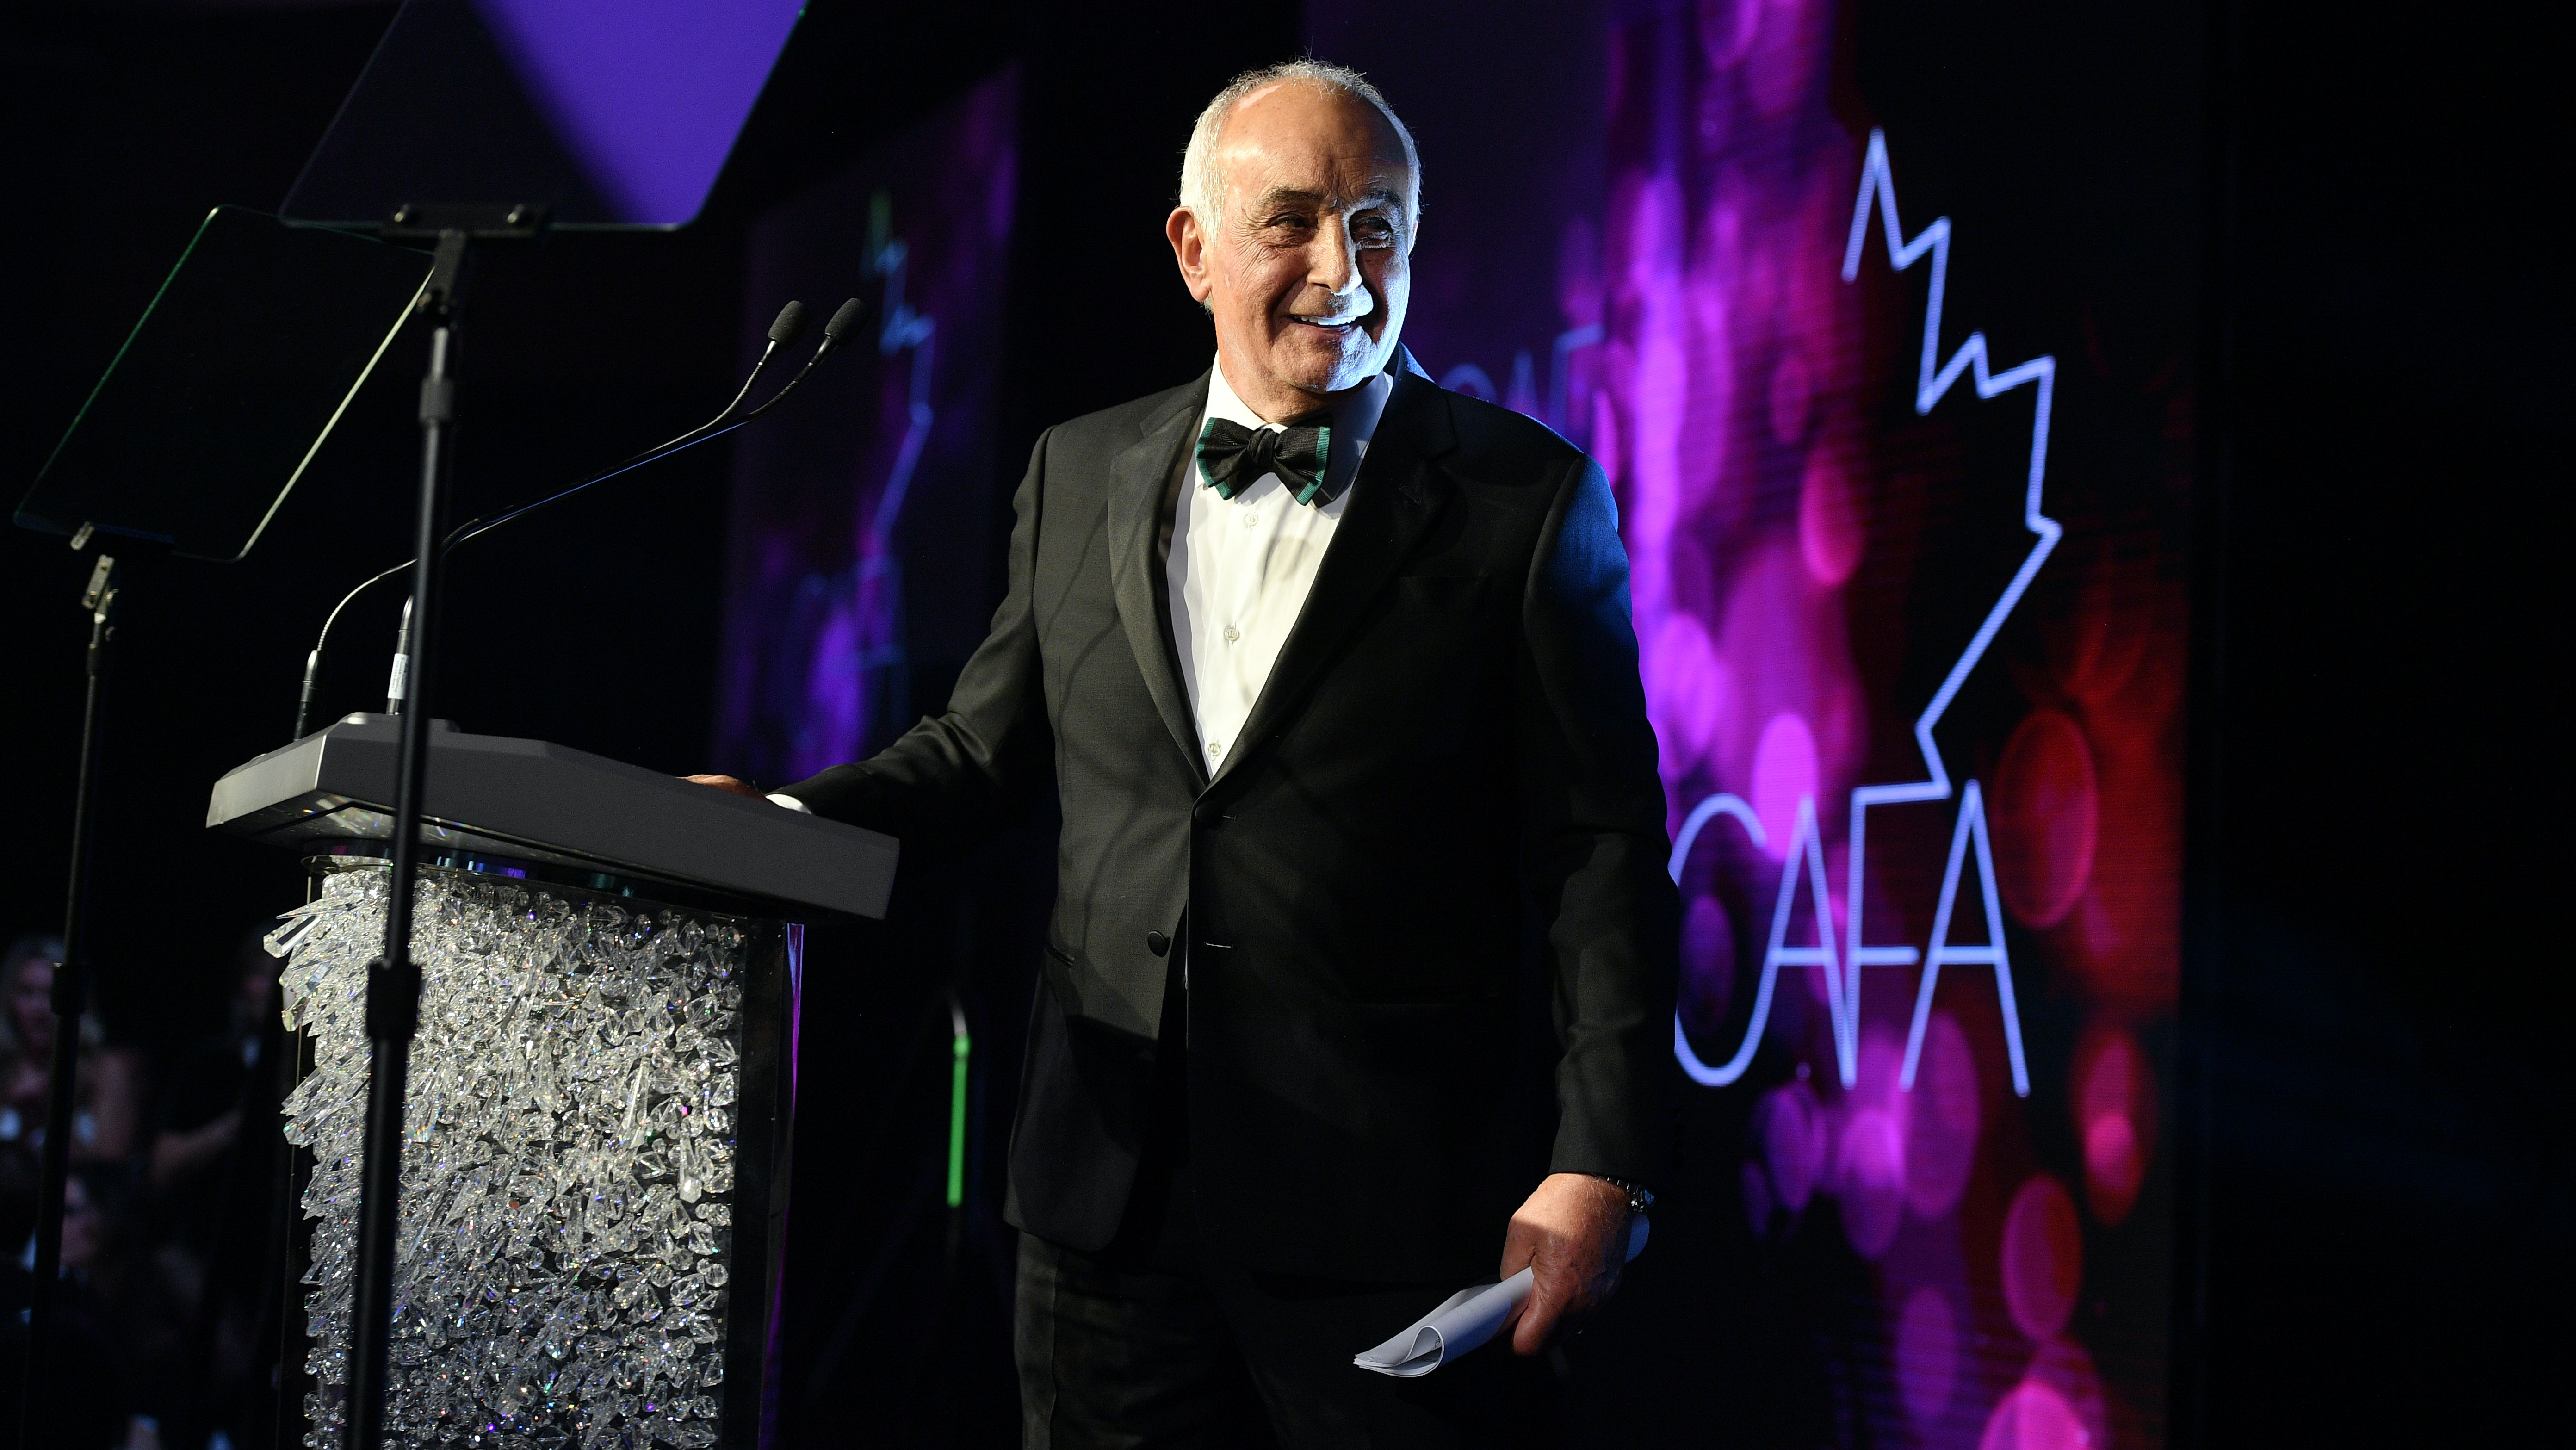 Aldo Bensadoun, Céline Dion Honored at Canadian Arts & Fashion Awards